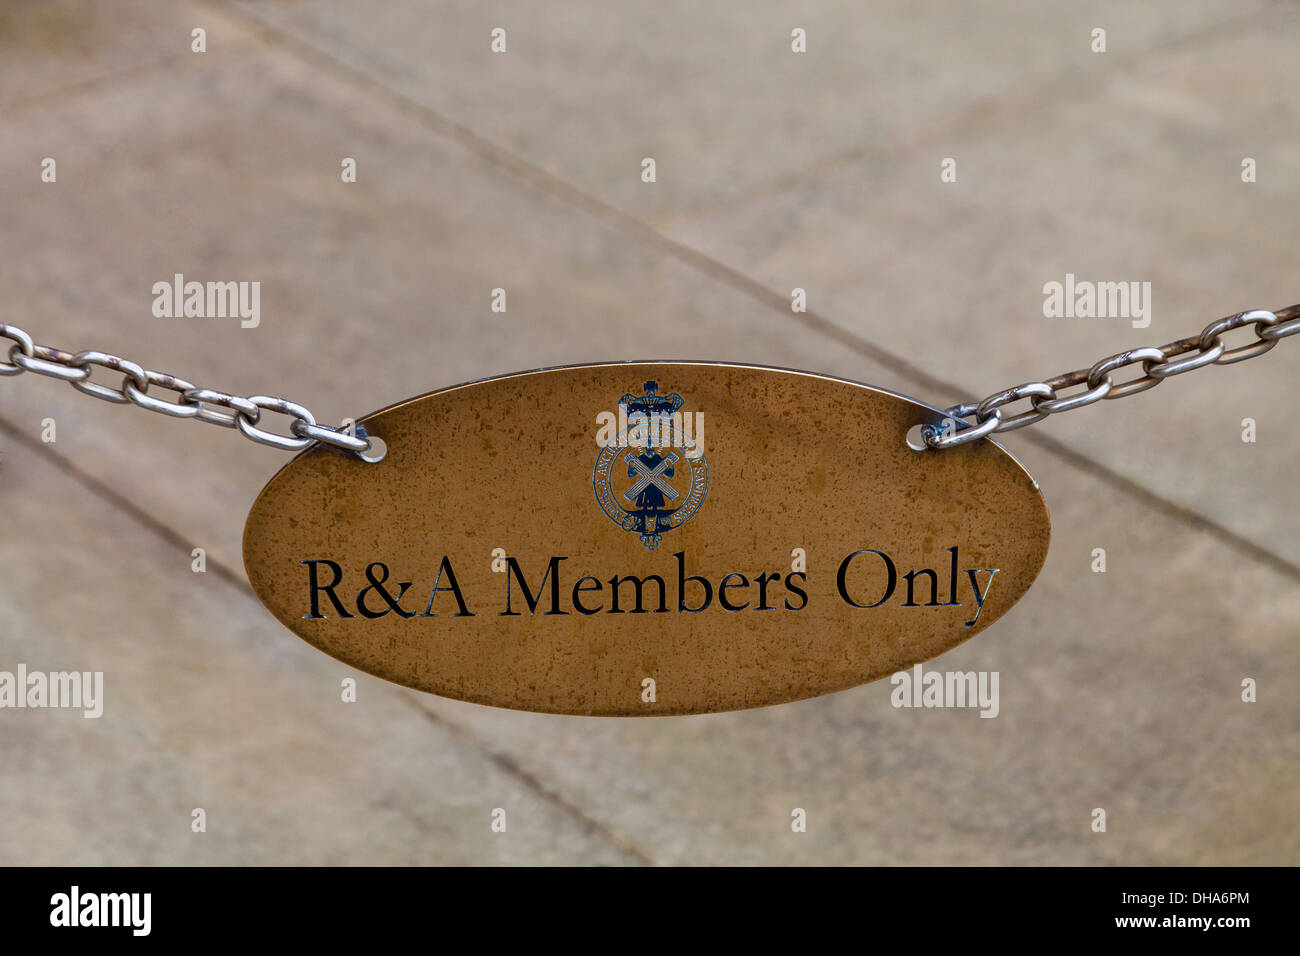 A R&A Members Only sign at the Royal And Ancient Clubhouse, St Andrews, Scotland. - Stock Image